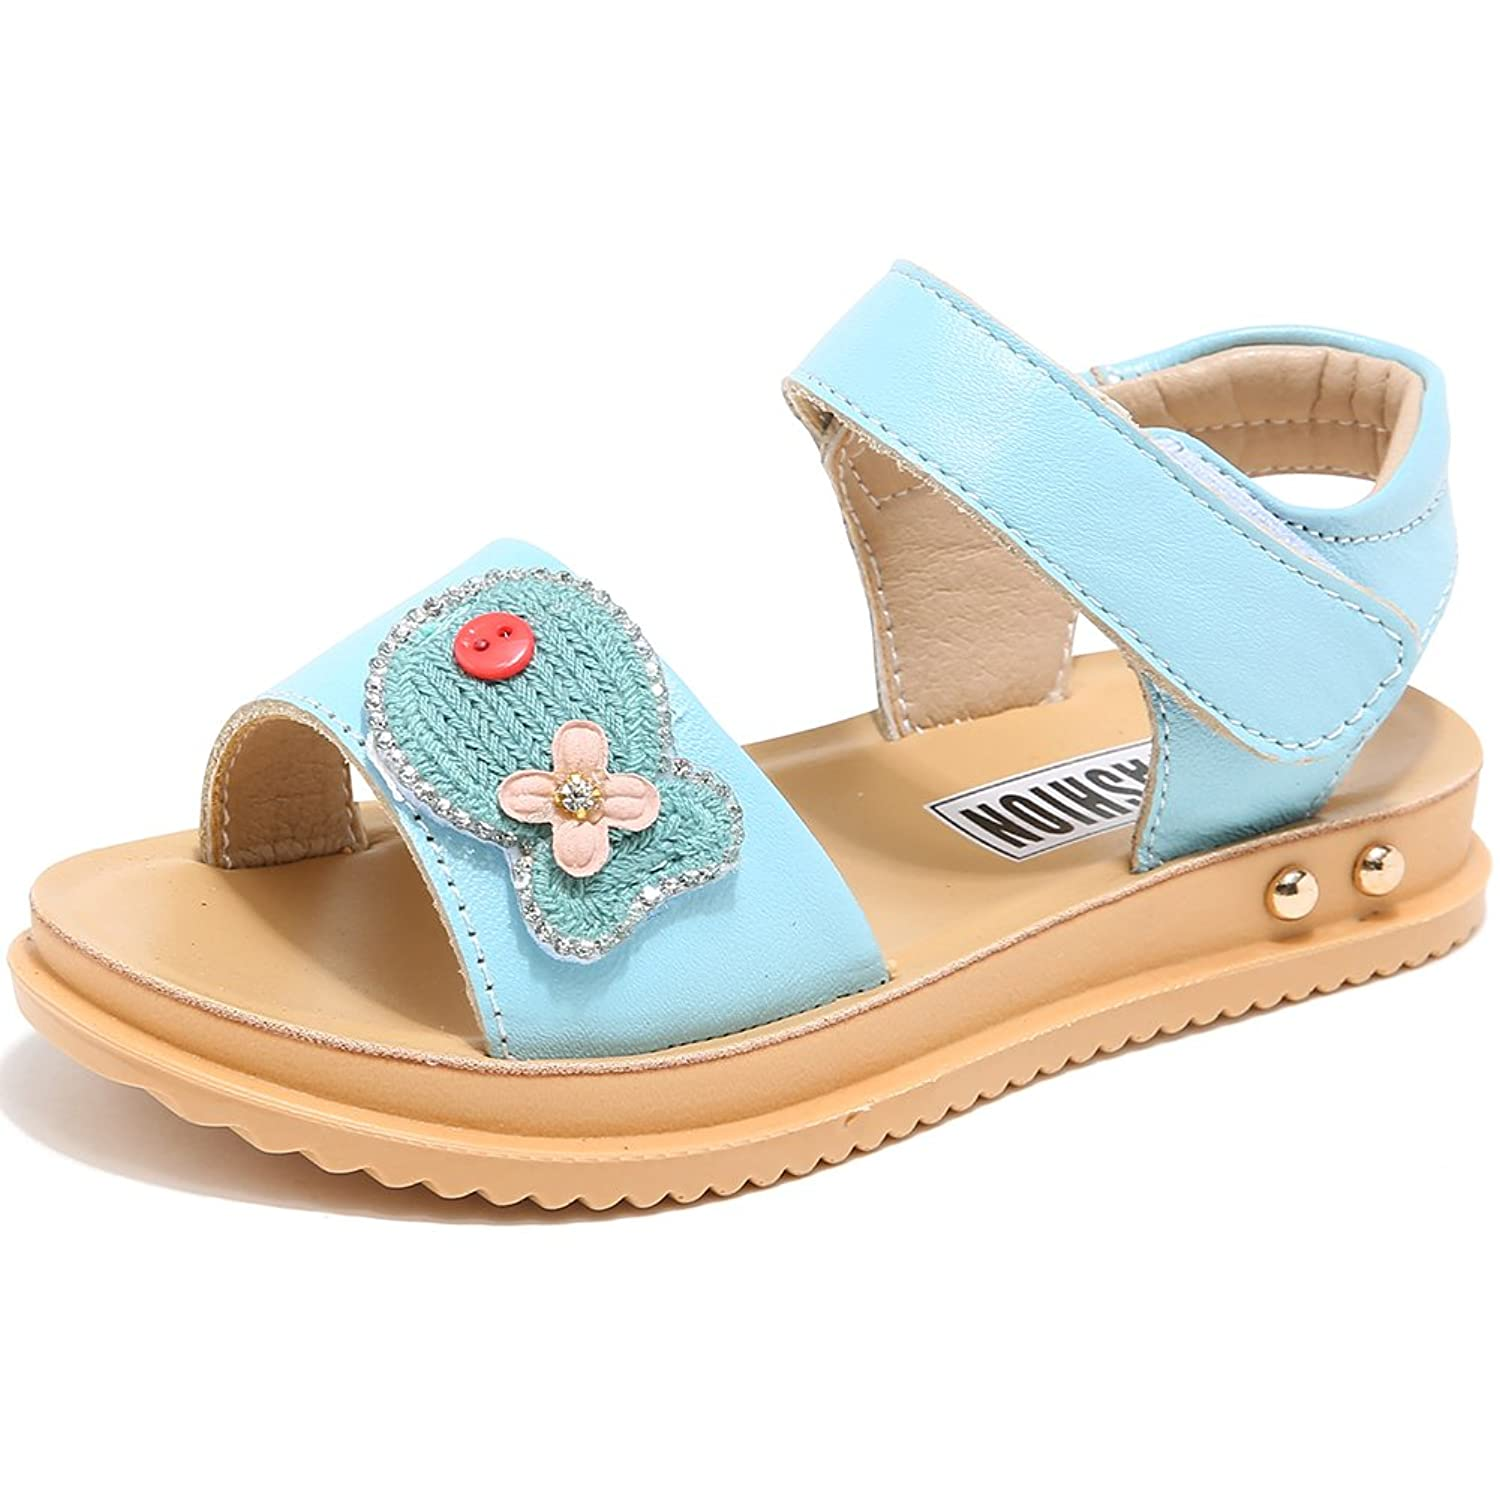 Hobibear Girls Leather Strap Cute Sandals Open Toe (Toddler/Little Kid/Big Kid) by Hobibear